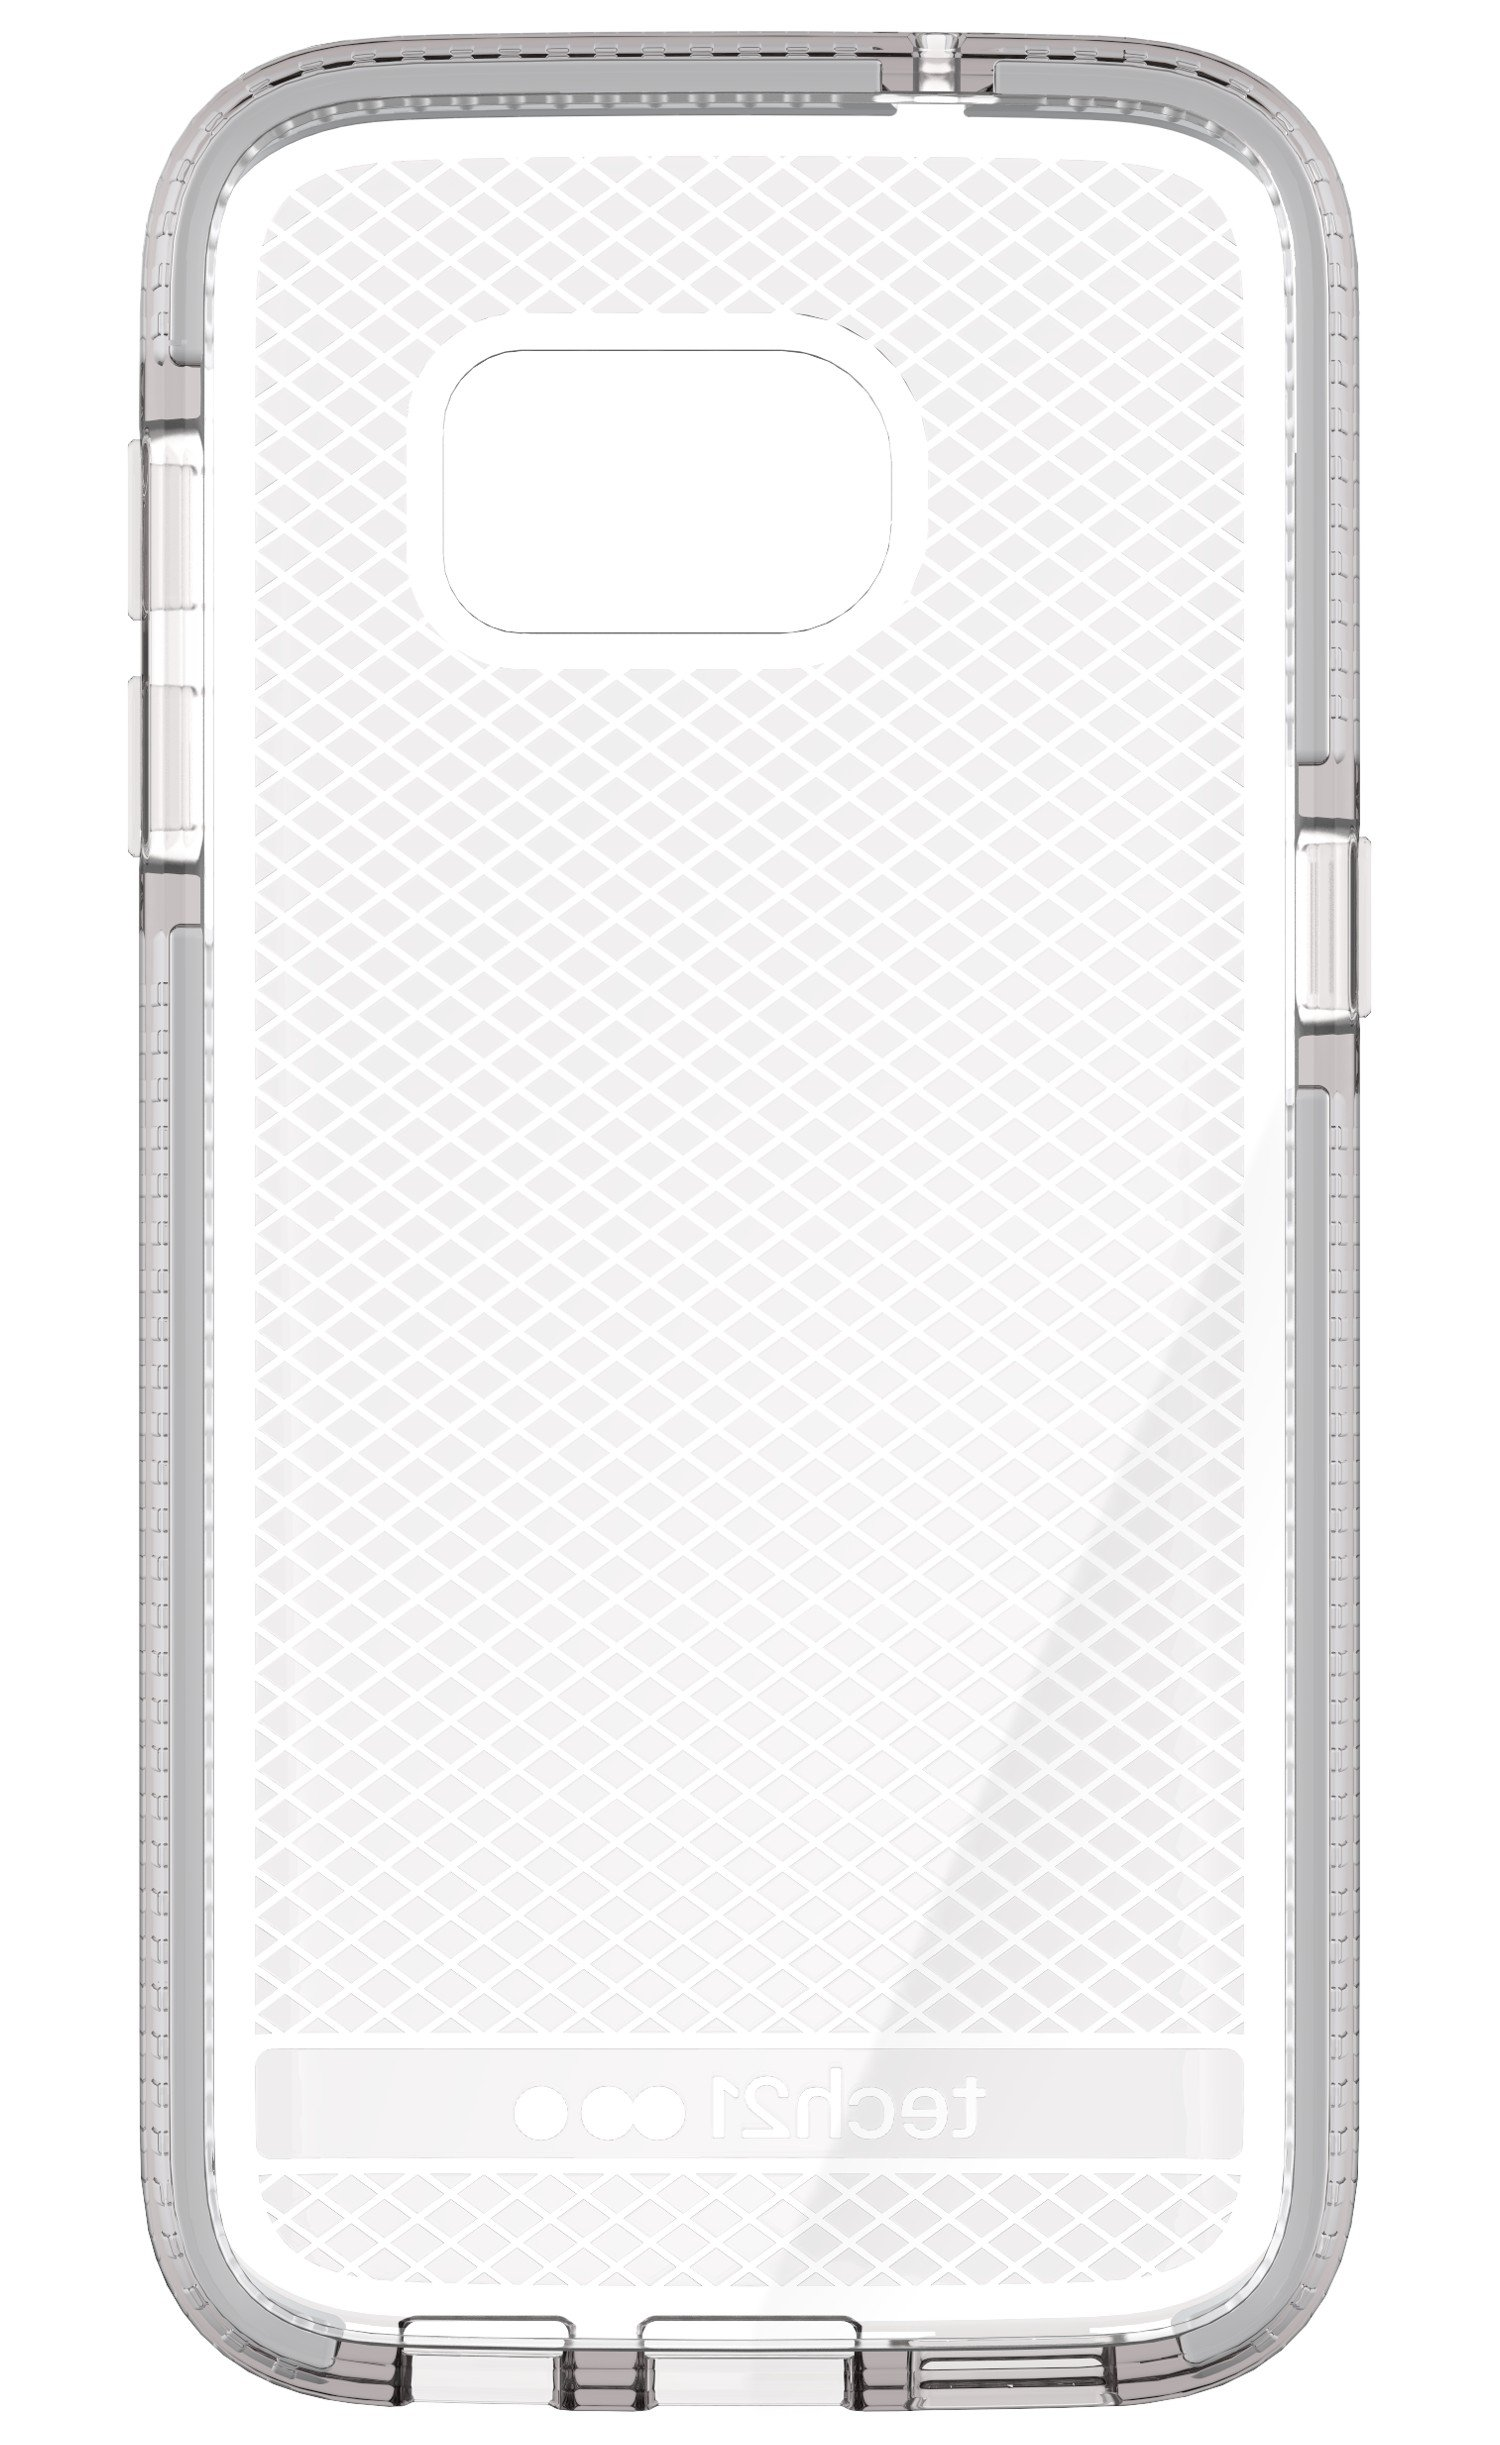 Tech21 Evo Check Case for Galaxy S7 - Clear/White by tech21 (Image #6)